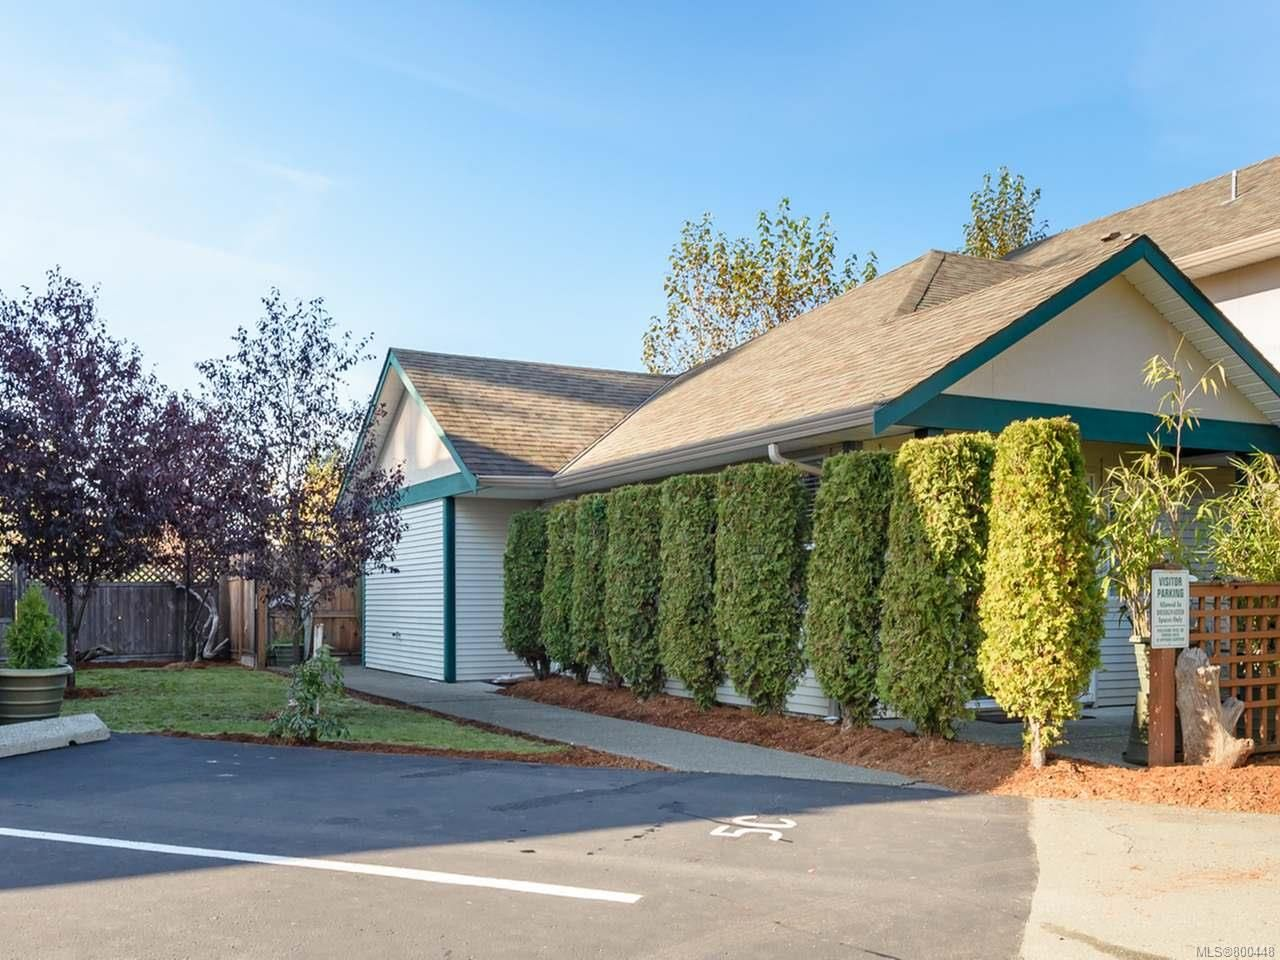 Main Photo: 5C 851 5th St in COURTENAY: CV Courtenay City Row/Townhouse for sale (Comox Valley)  : MLS®# 800448